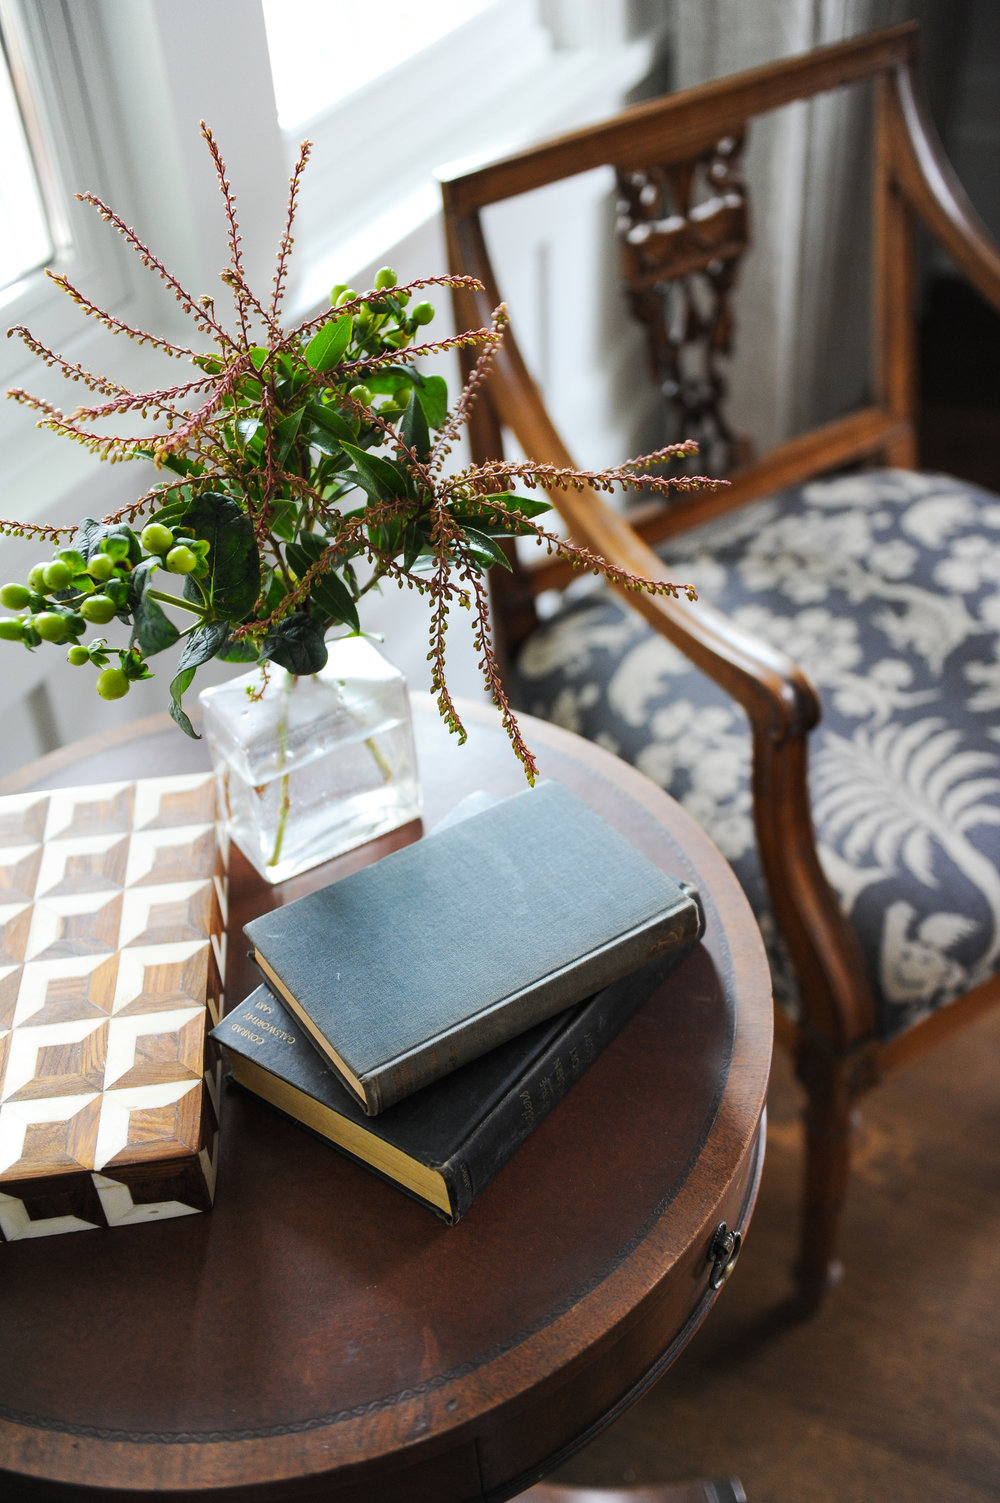 A wooden chair with a blue and white upholstered seat sits next to a small round table. There is a little square glass vase with plants sitting next to two books and a rectangular wooden box top.